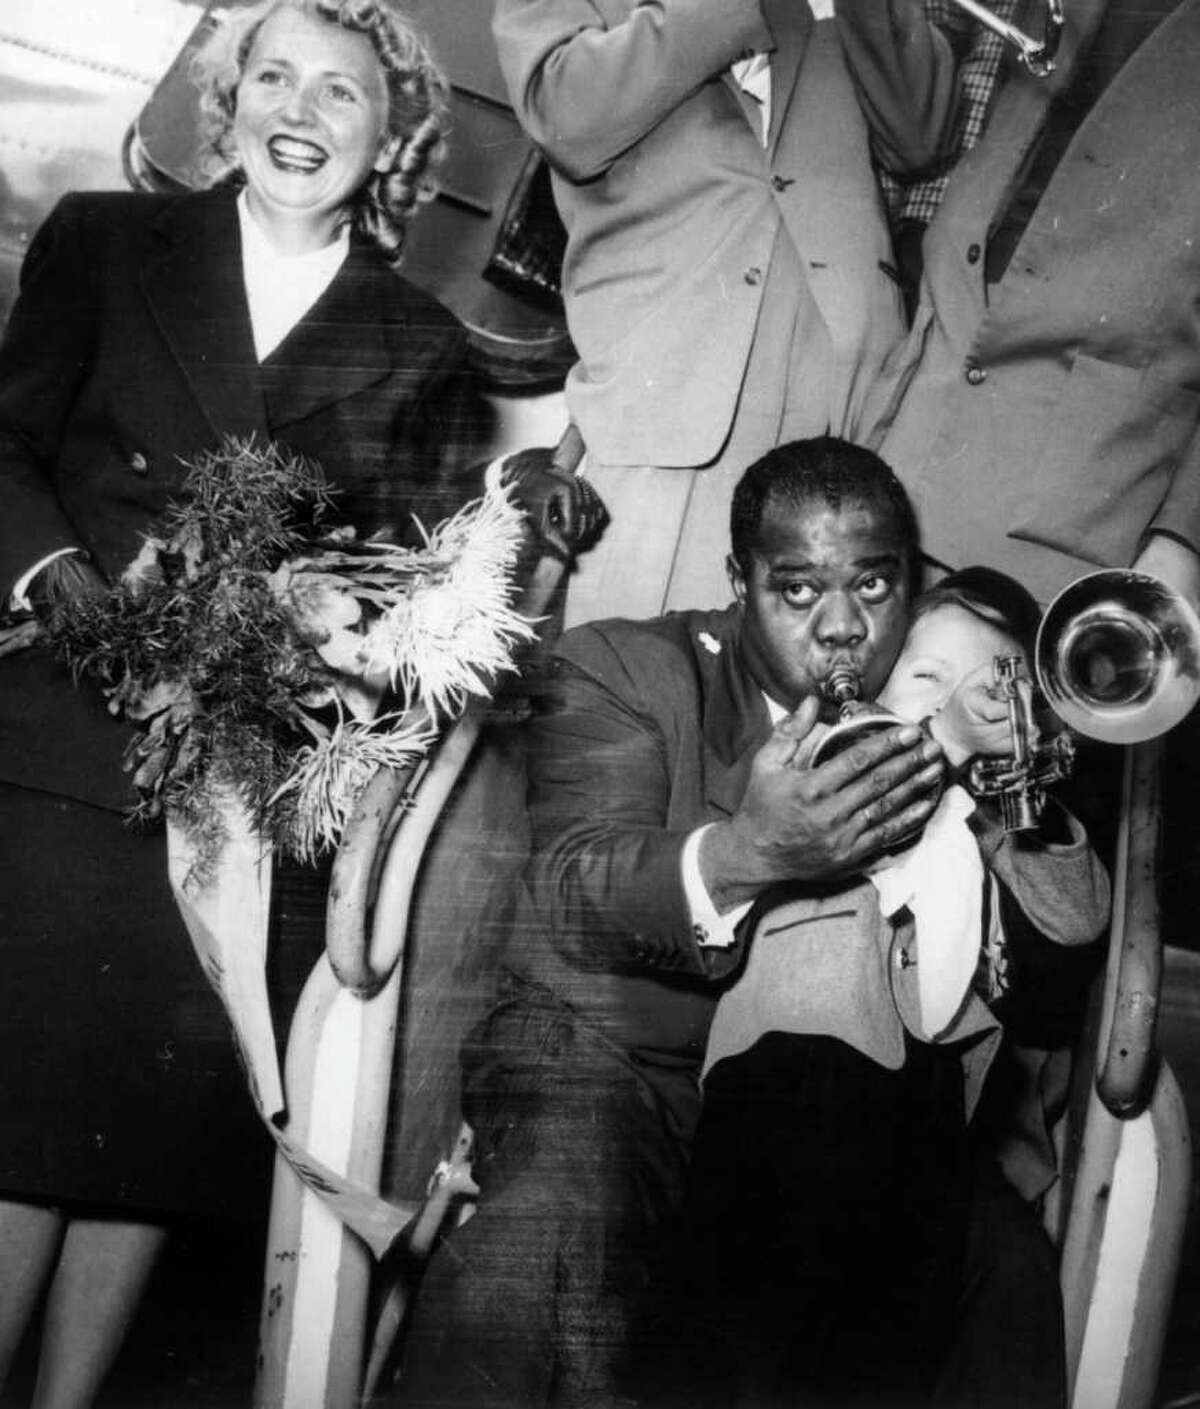 Once upon a time, music stars only added to glamor of air travel. These days, most of them seem as frazzled as the rest of us, even though they ride up front in the sardine can. Then they have to deal with the paparazzi. Let's start near the beginning, with this scene of jazz trumpeter and singer Louis Armstrong blowing horns with a young fan after arriving at Dusseldorf Airport on October 10, 1952.